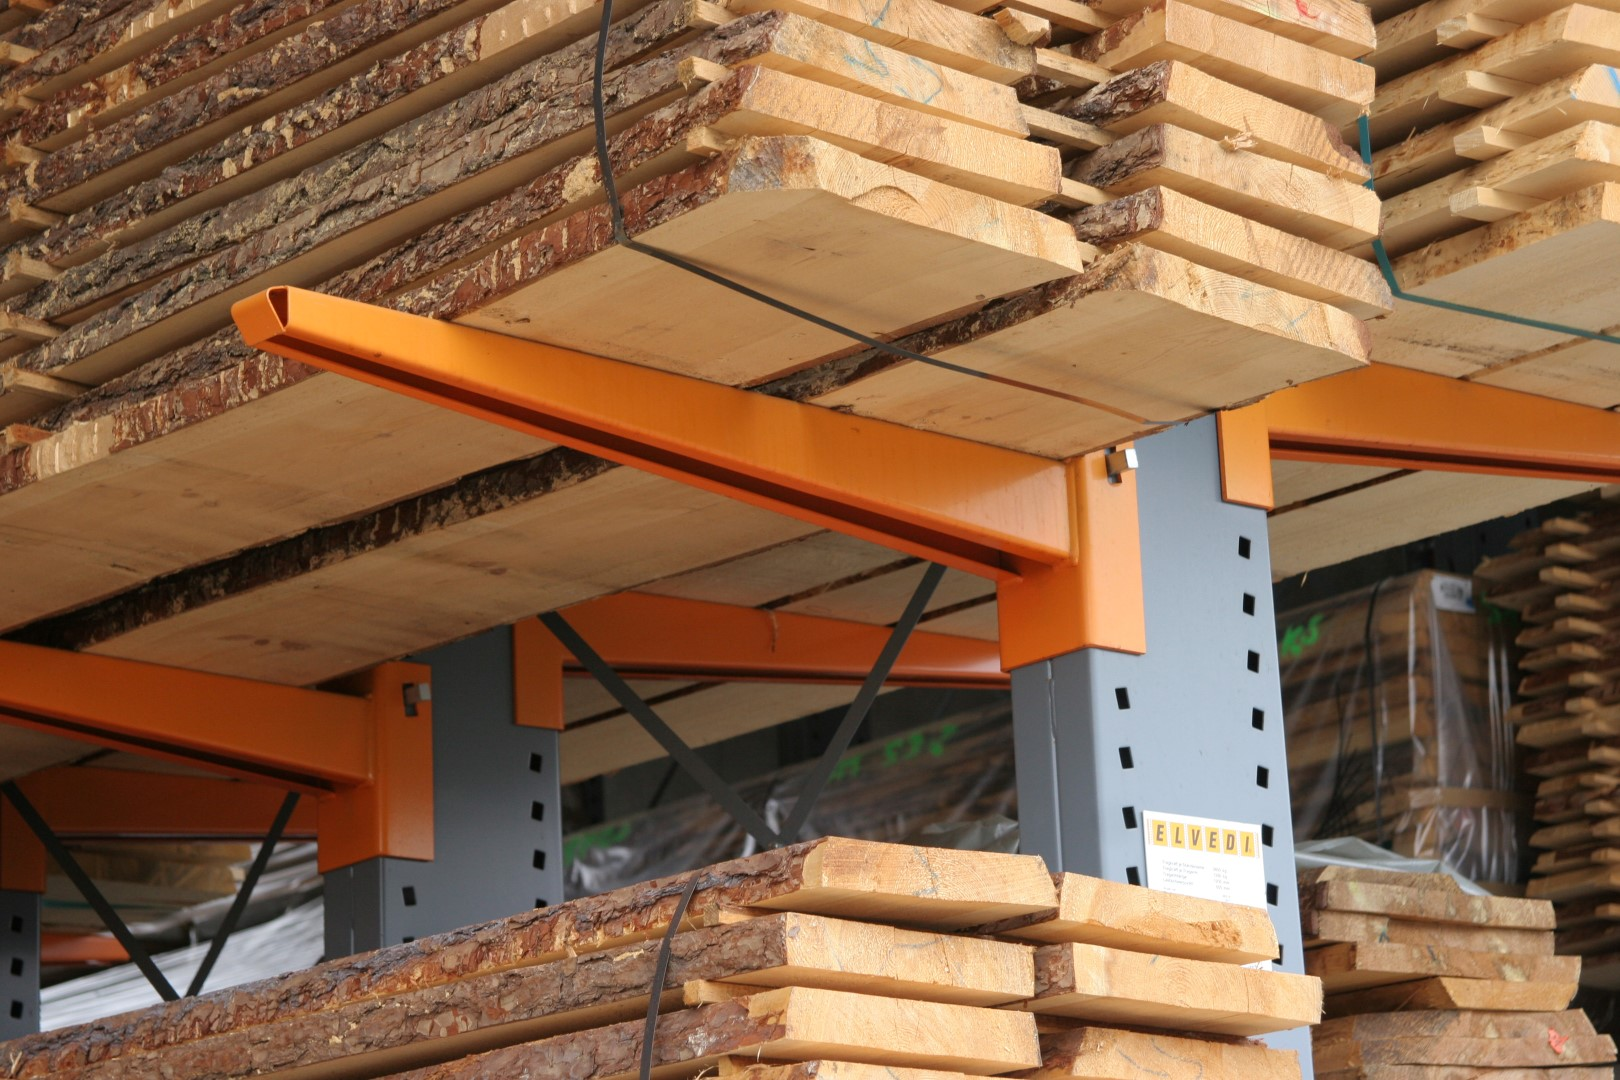 Cantilever racking for long goods storage